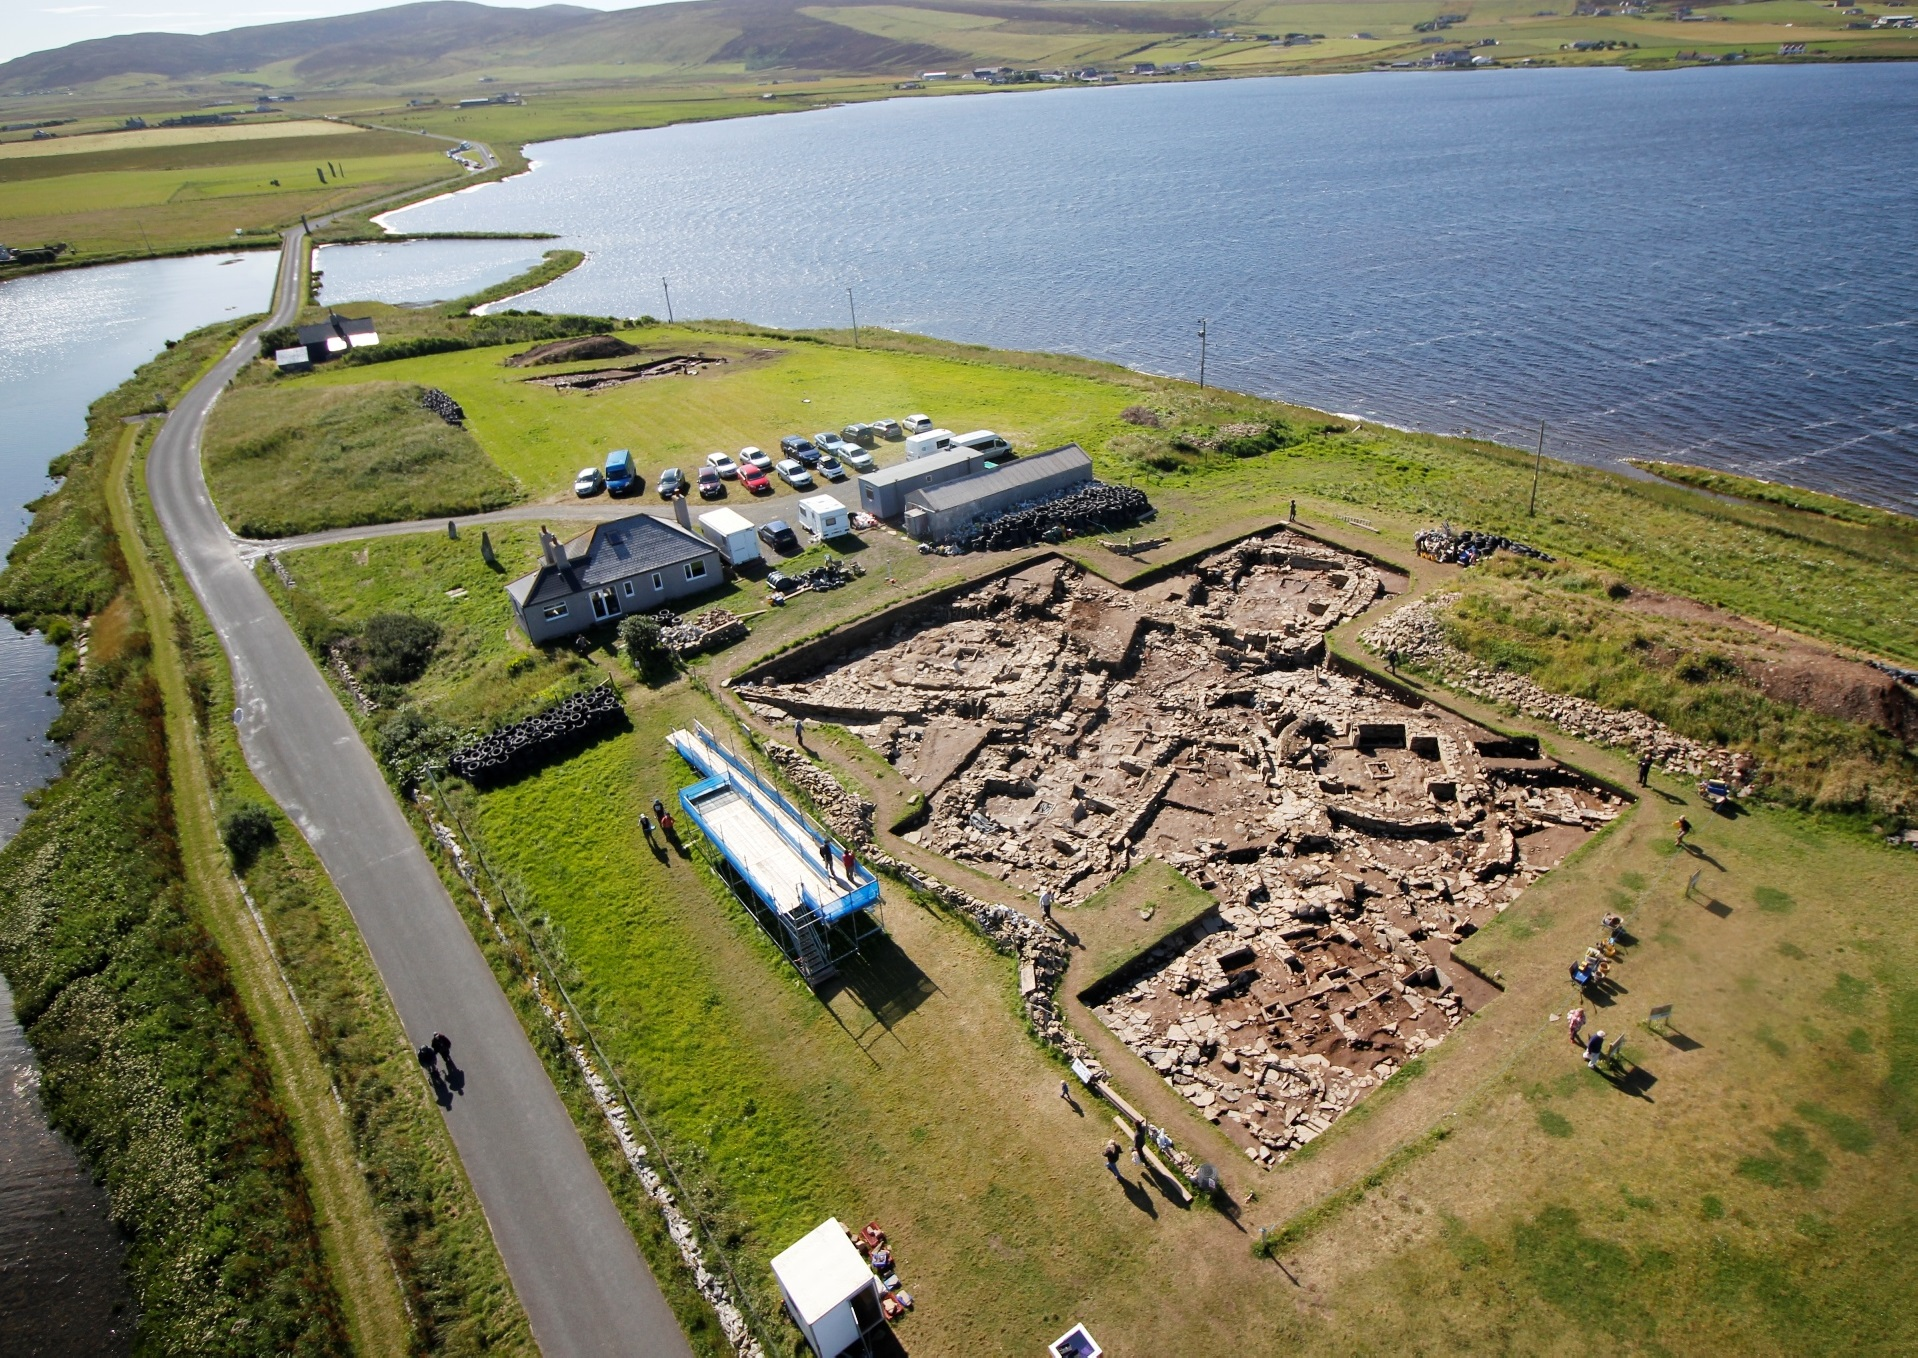 The Ness of Brodgar under excavation